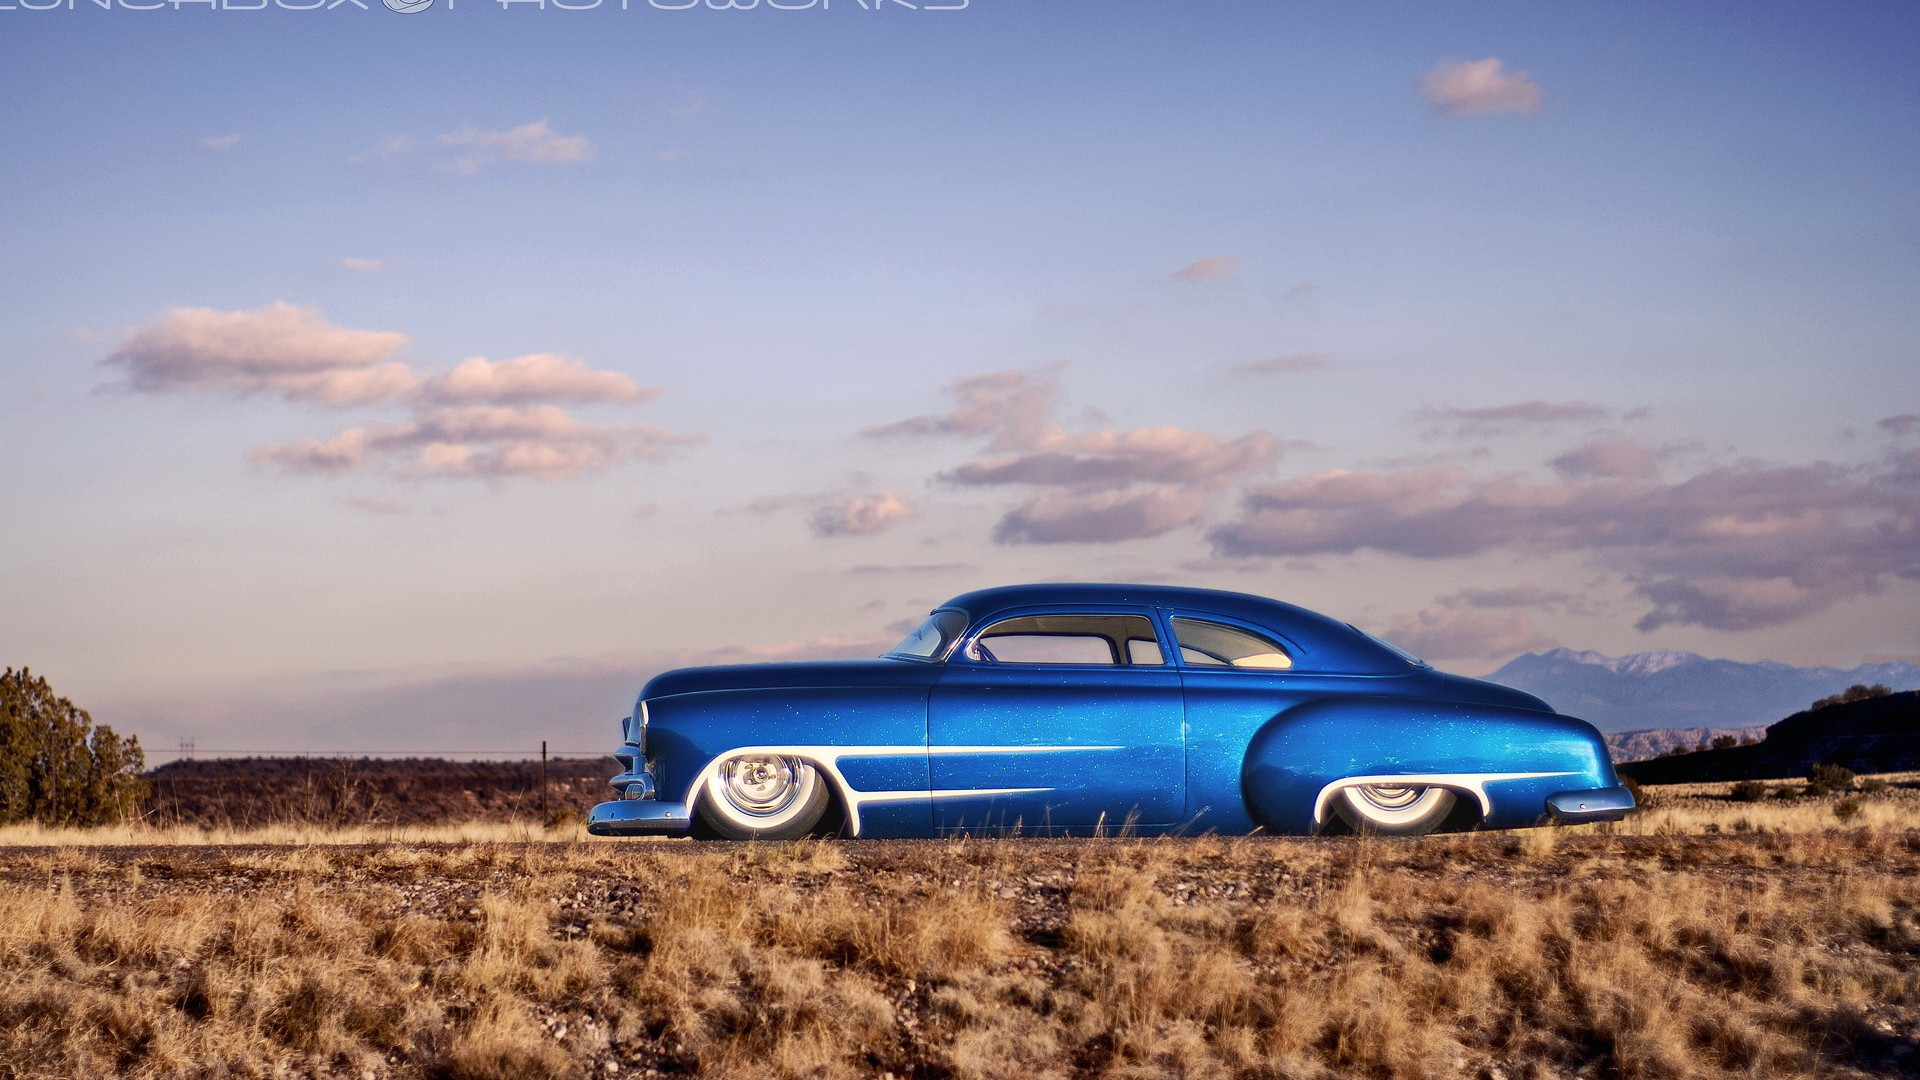 Muscle Car 3d Live Wallpaper Car Blue Cars Hot Rod Chevy Chevrolet Desert